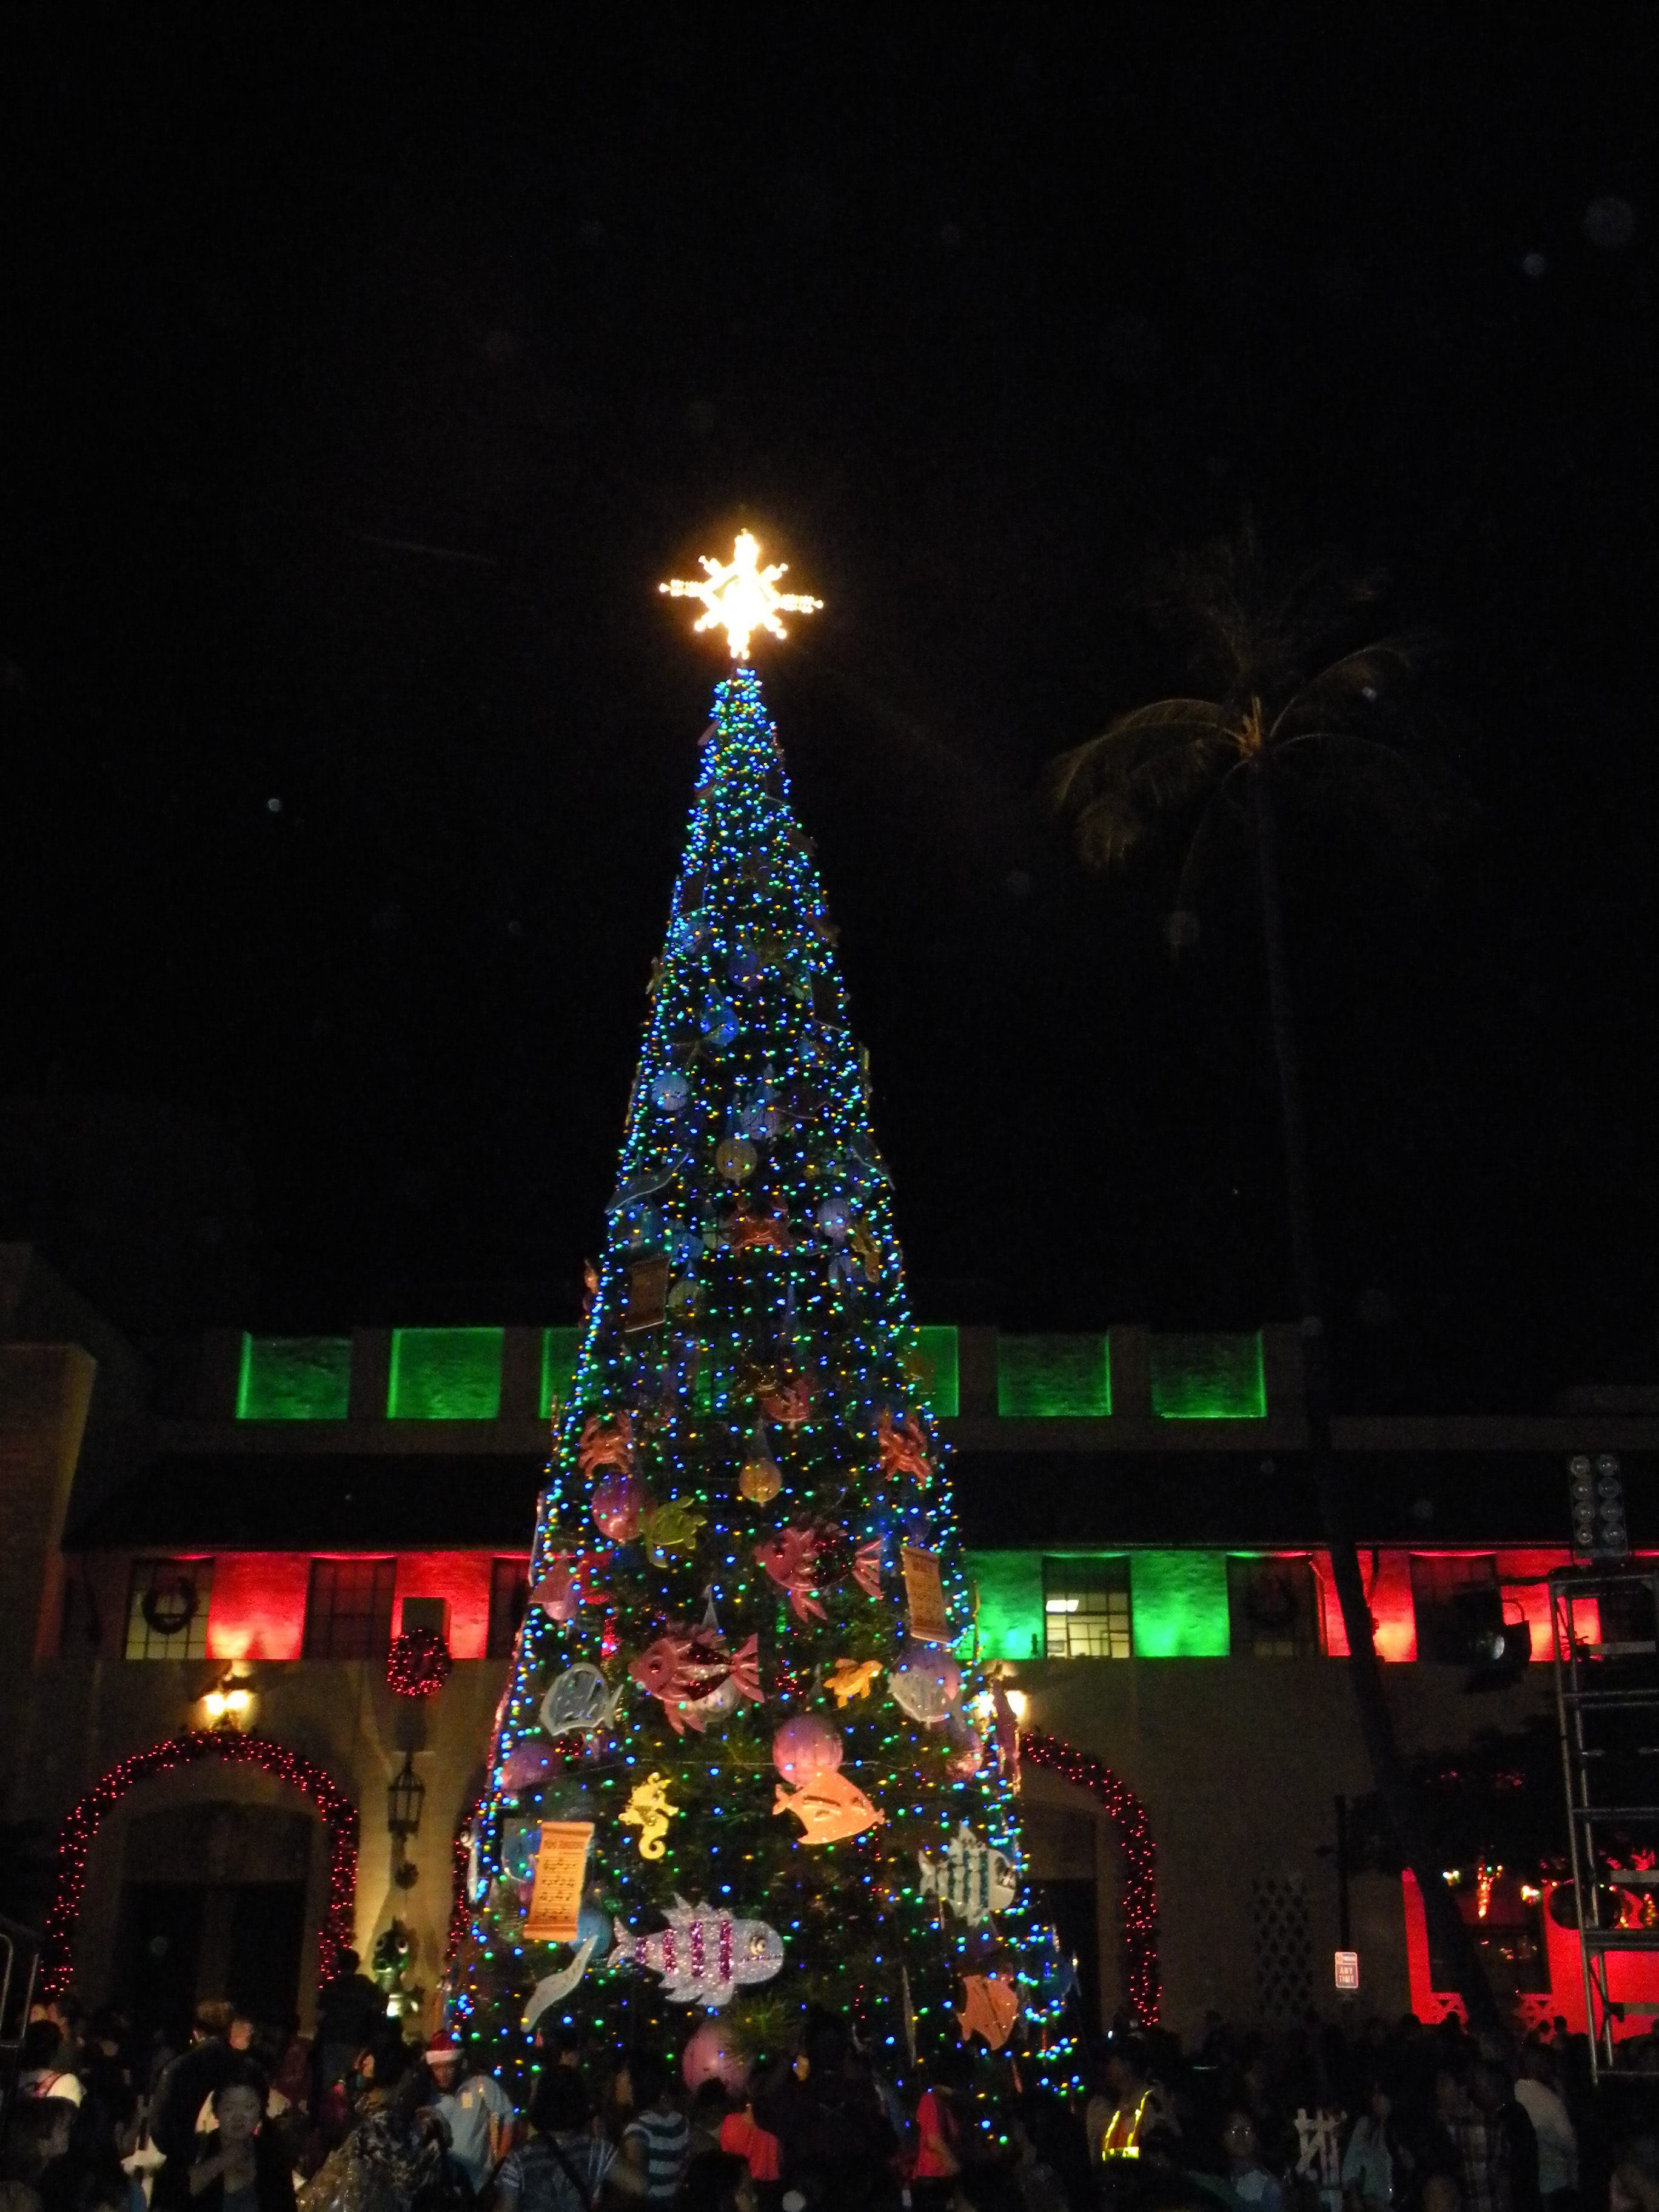 the honolulu city lights will be featured until january 01 2012 for free and it is open to the public on a daily basis until then